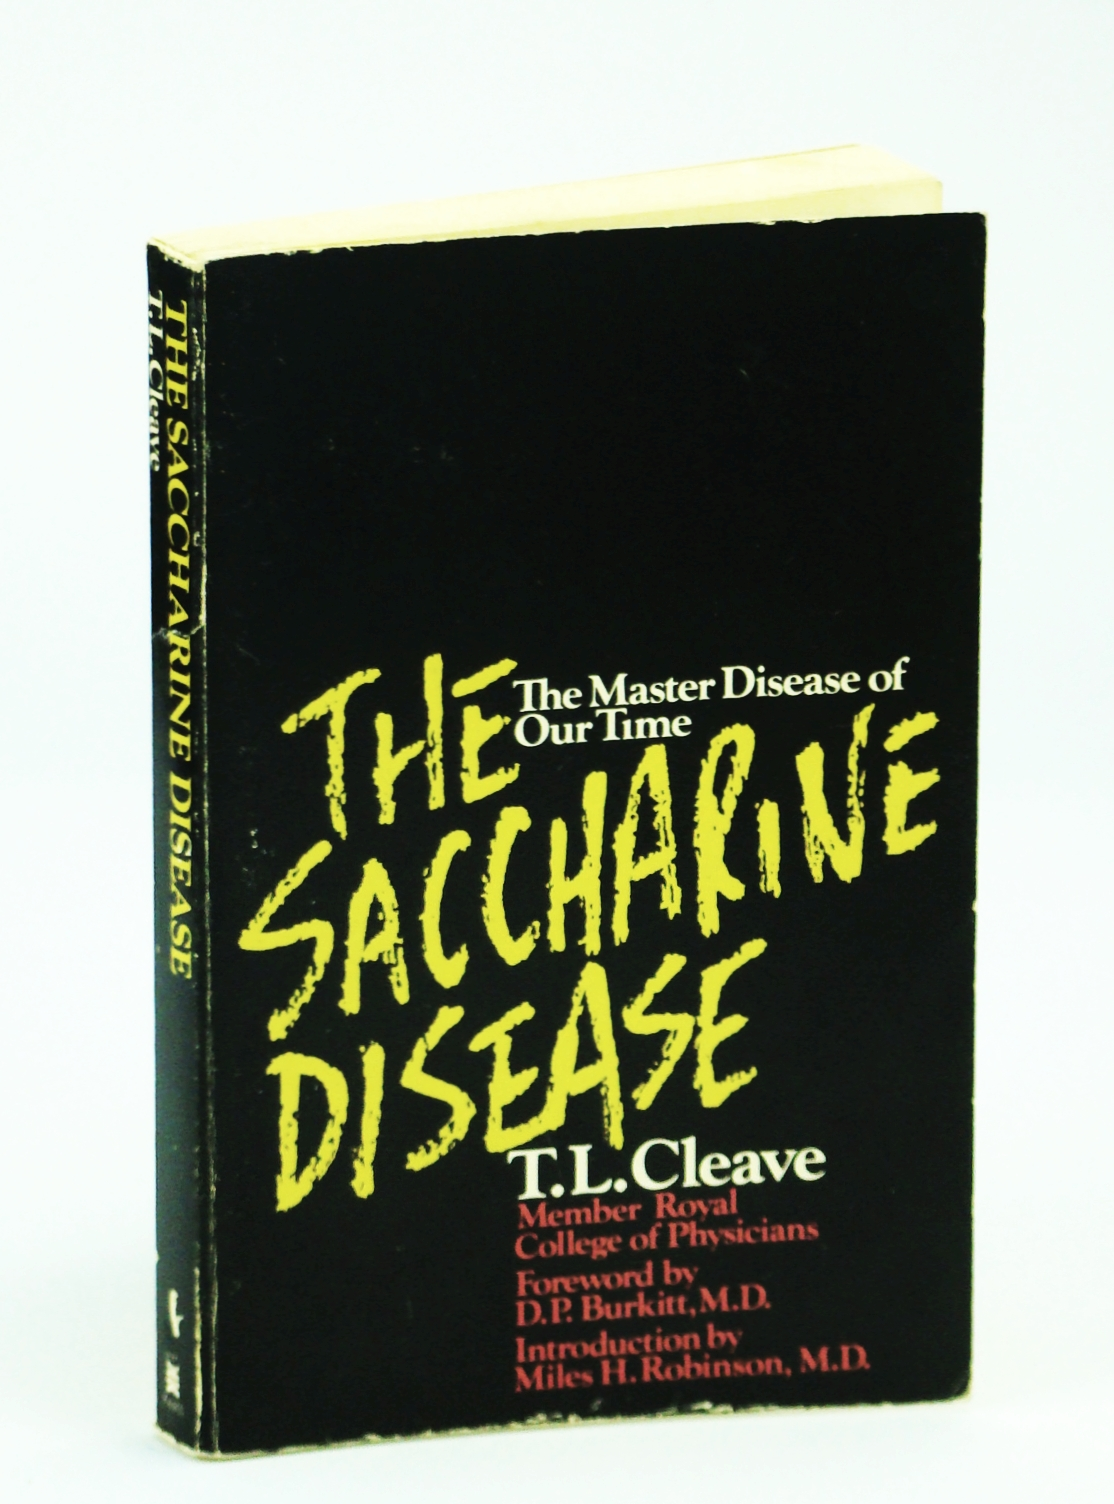 Image for Saccharine Disease